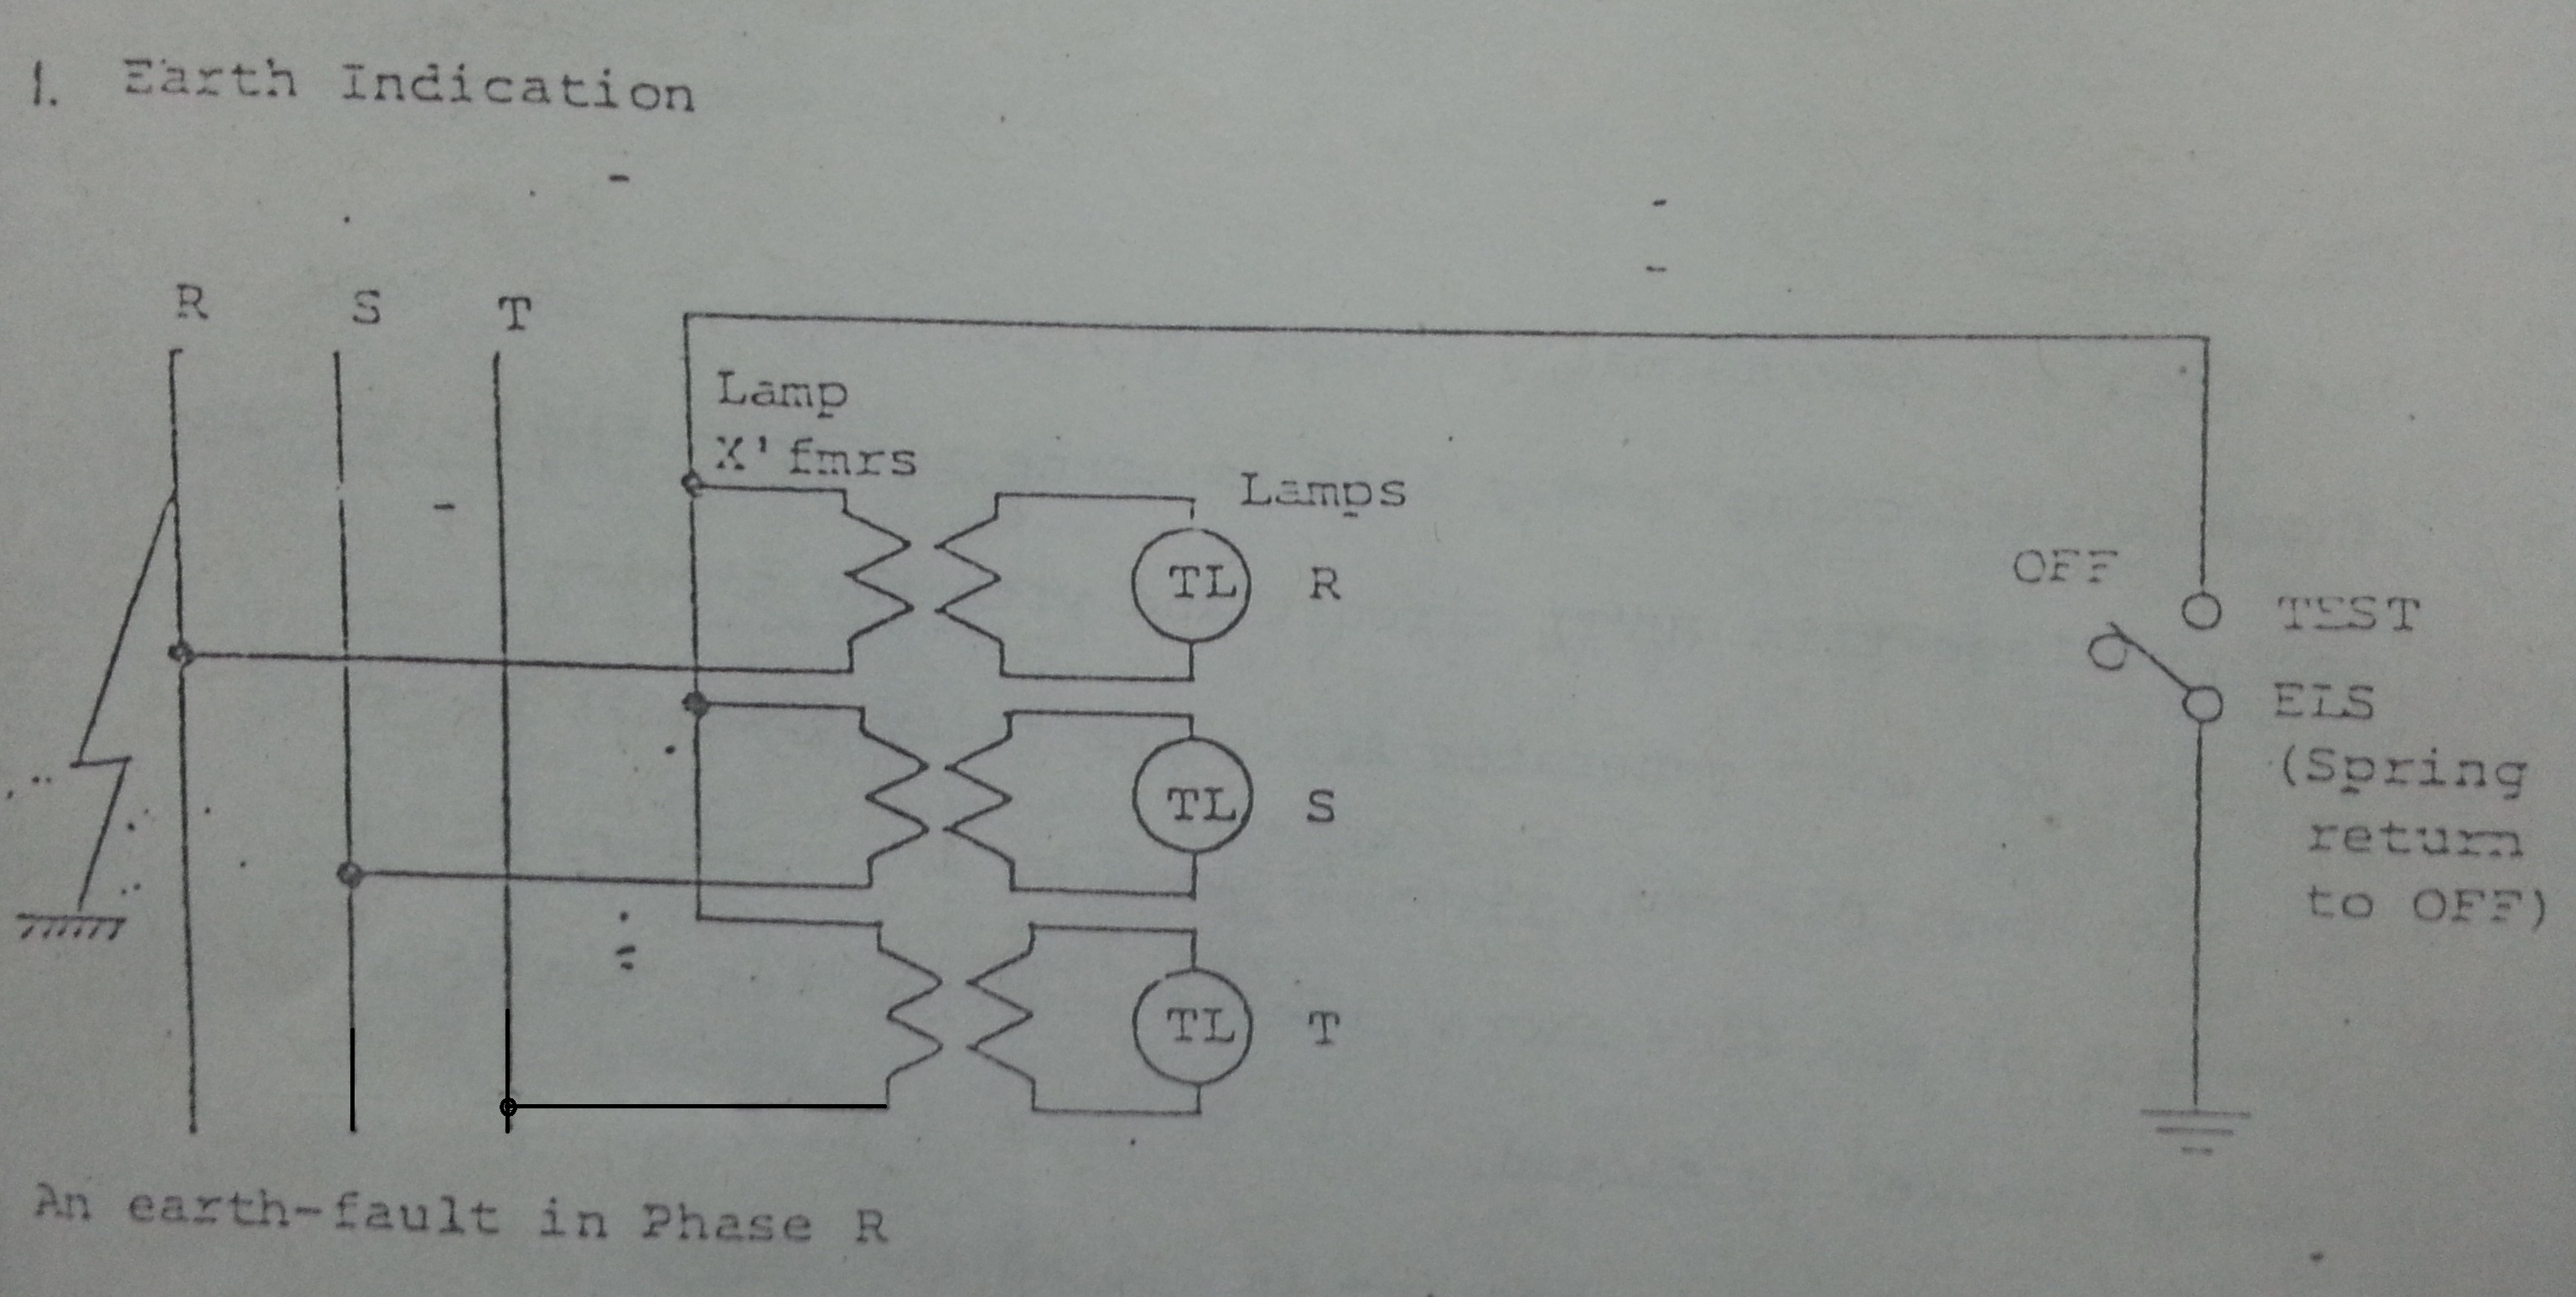 Earth Fault Indicator Circuit In Ships